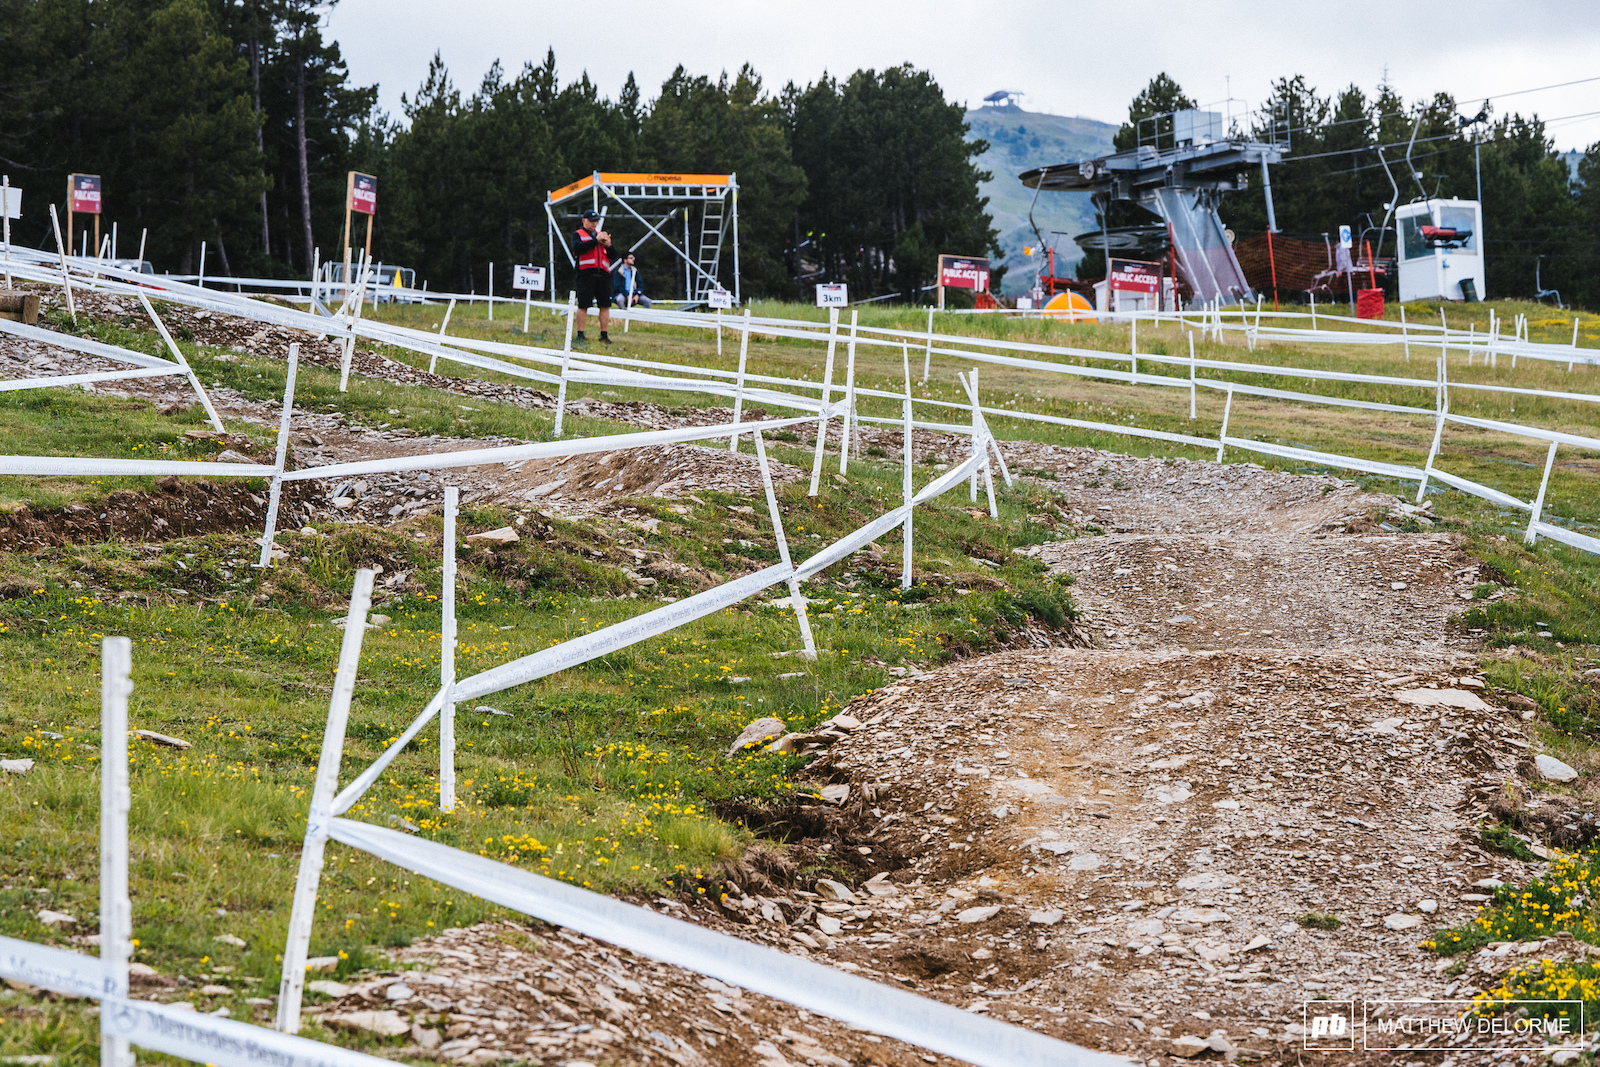 Berms and rollers back down into the venue. Just a little bit of park to spice it up.